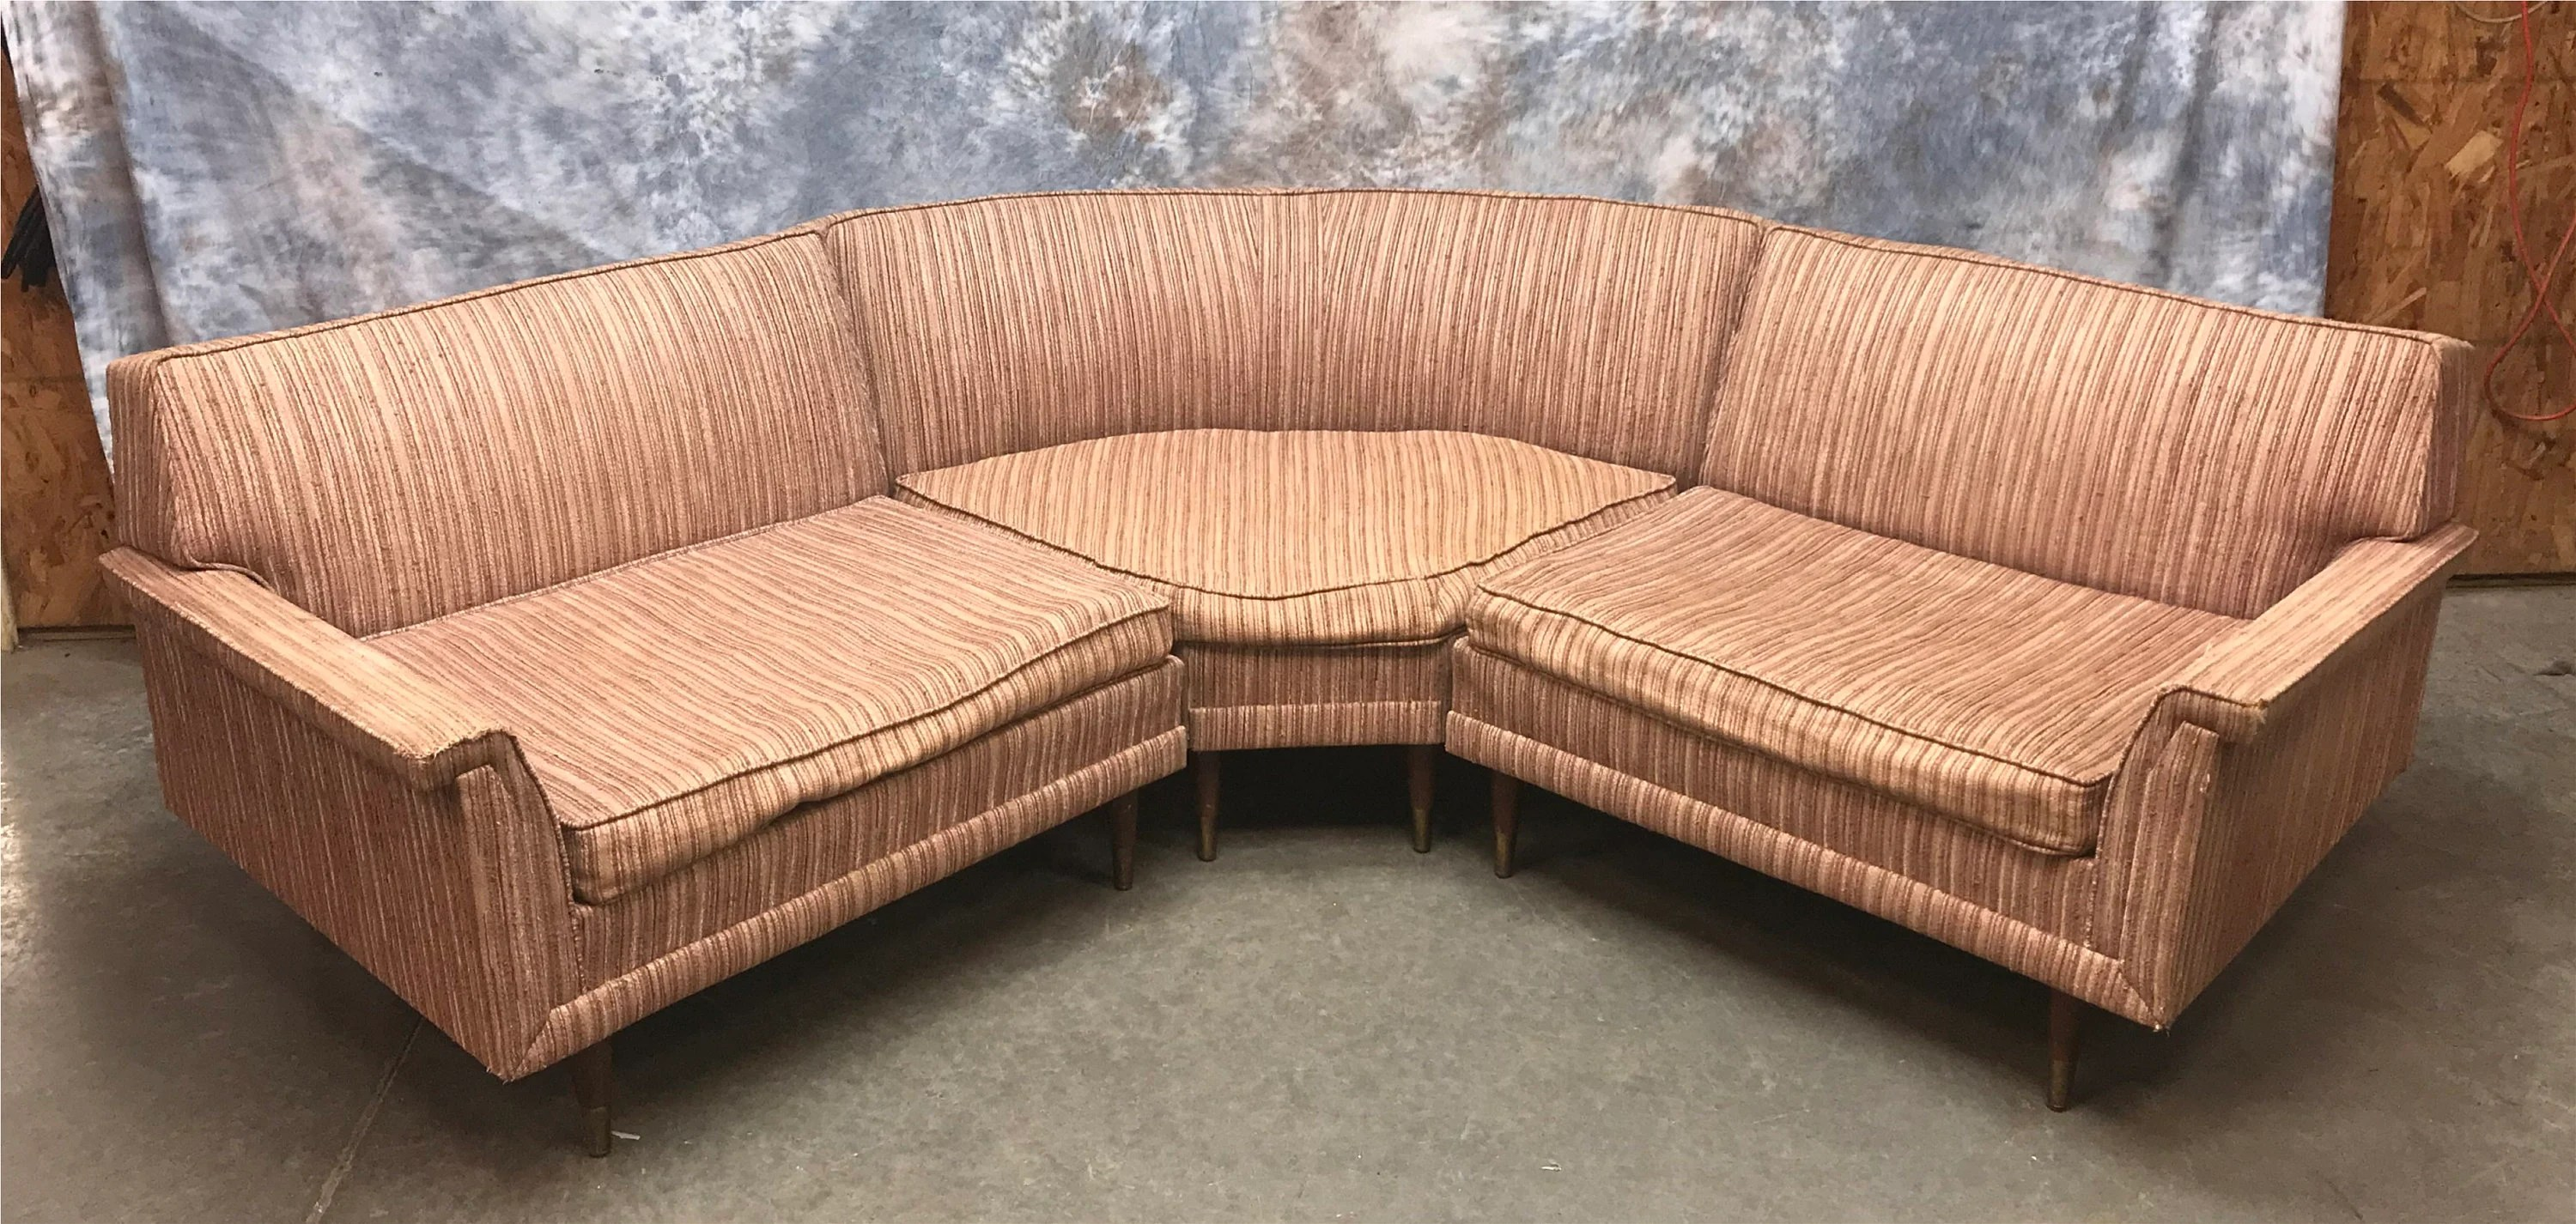 sectional sofa couch michael nicholas kroehler mid century modern 3 piece etsy image 0